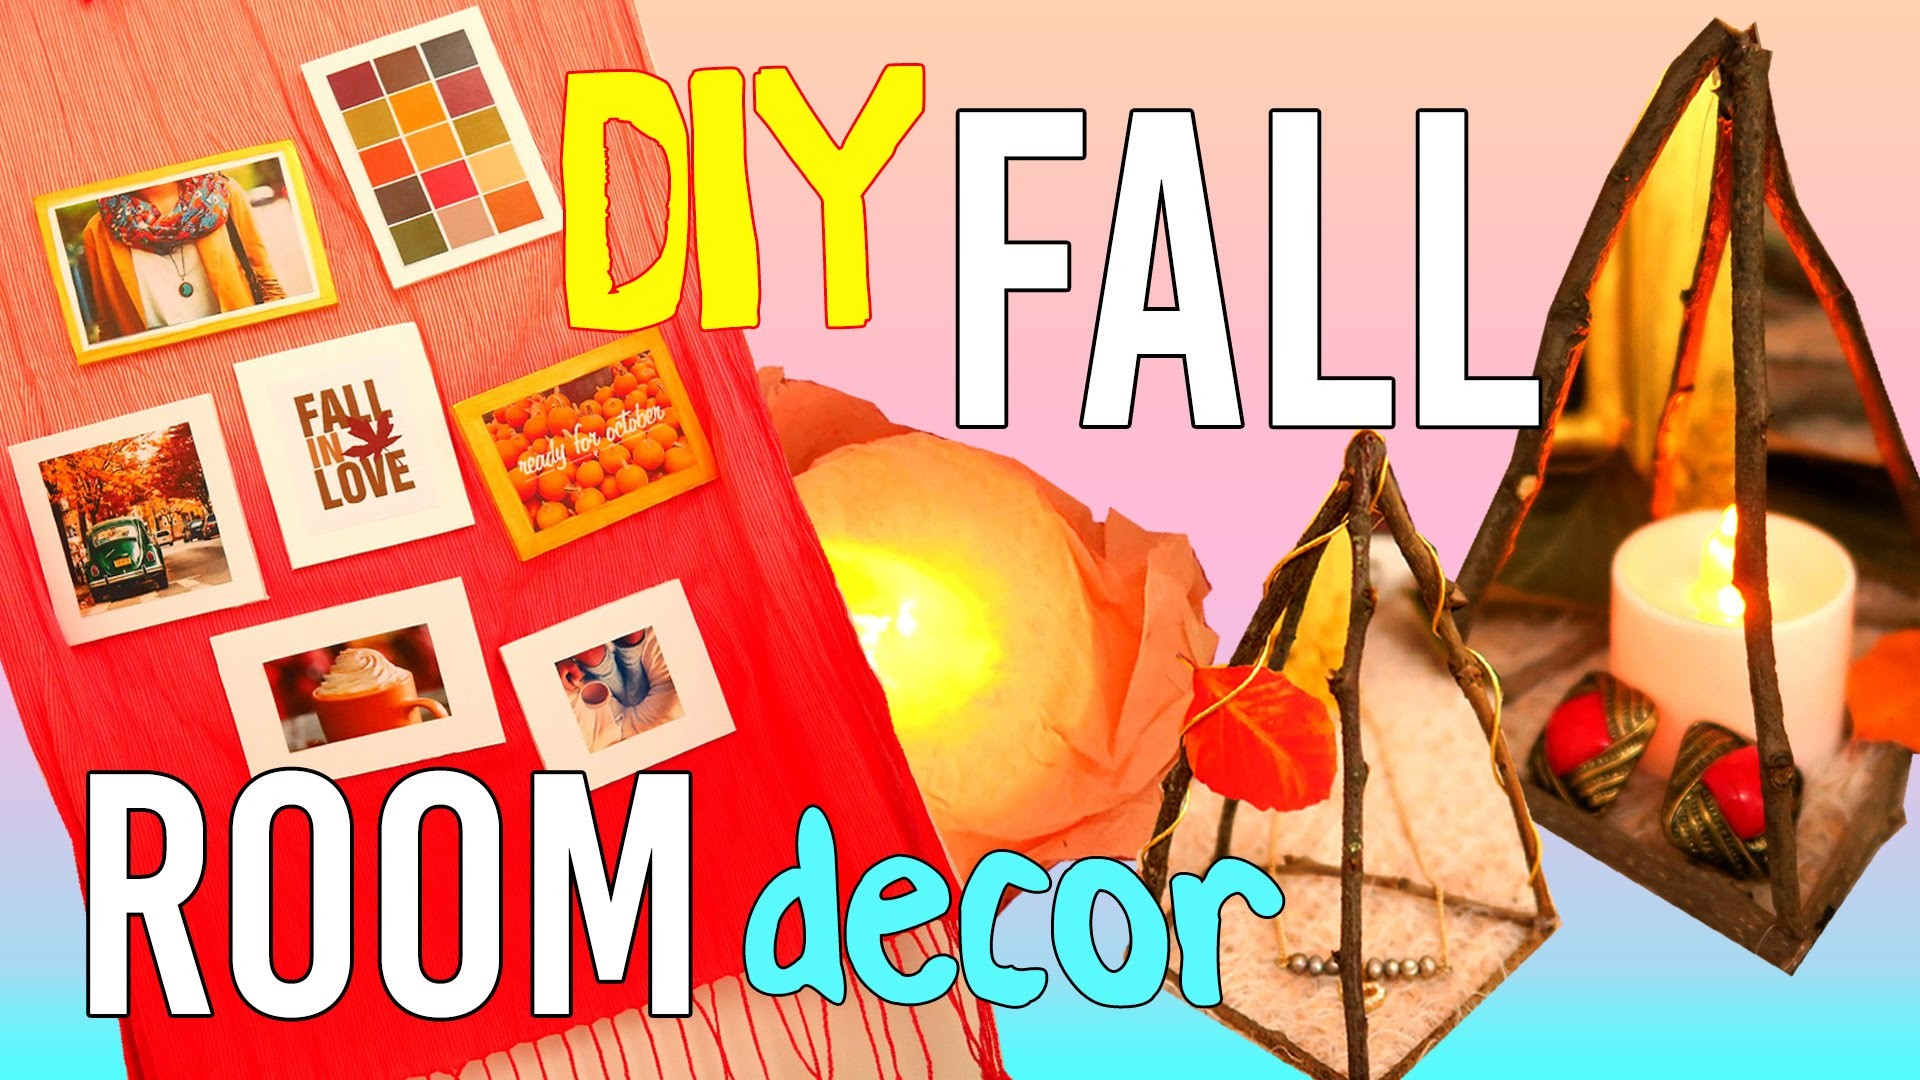 Tumblry Fall DIY Room Decor - Wood Decor, Wall Decor, Candle Decor - DIY Crafts - MakeWon 소품 만들기